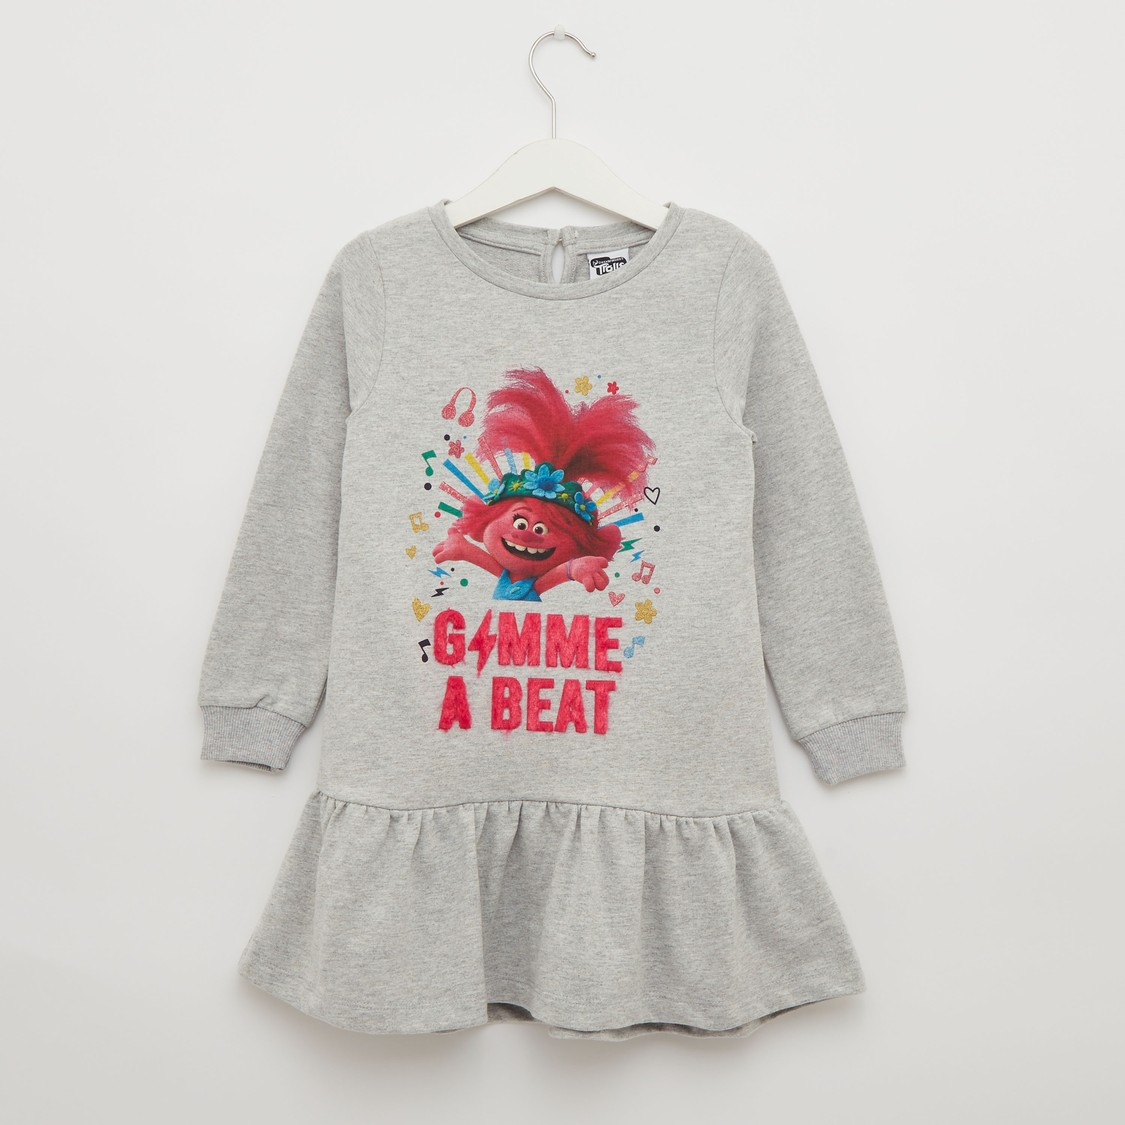 Trolls Print Dress with Round Neck and Long Sleeves